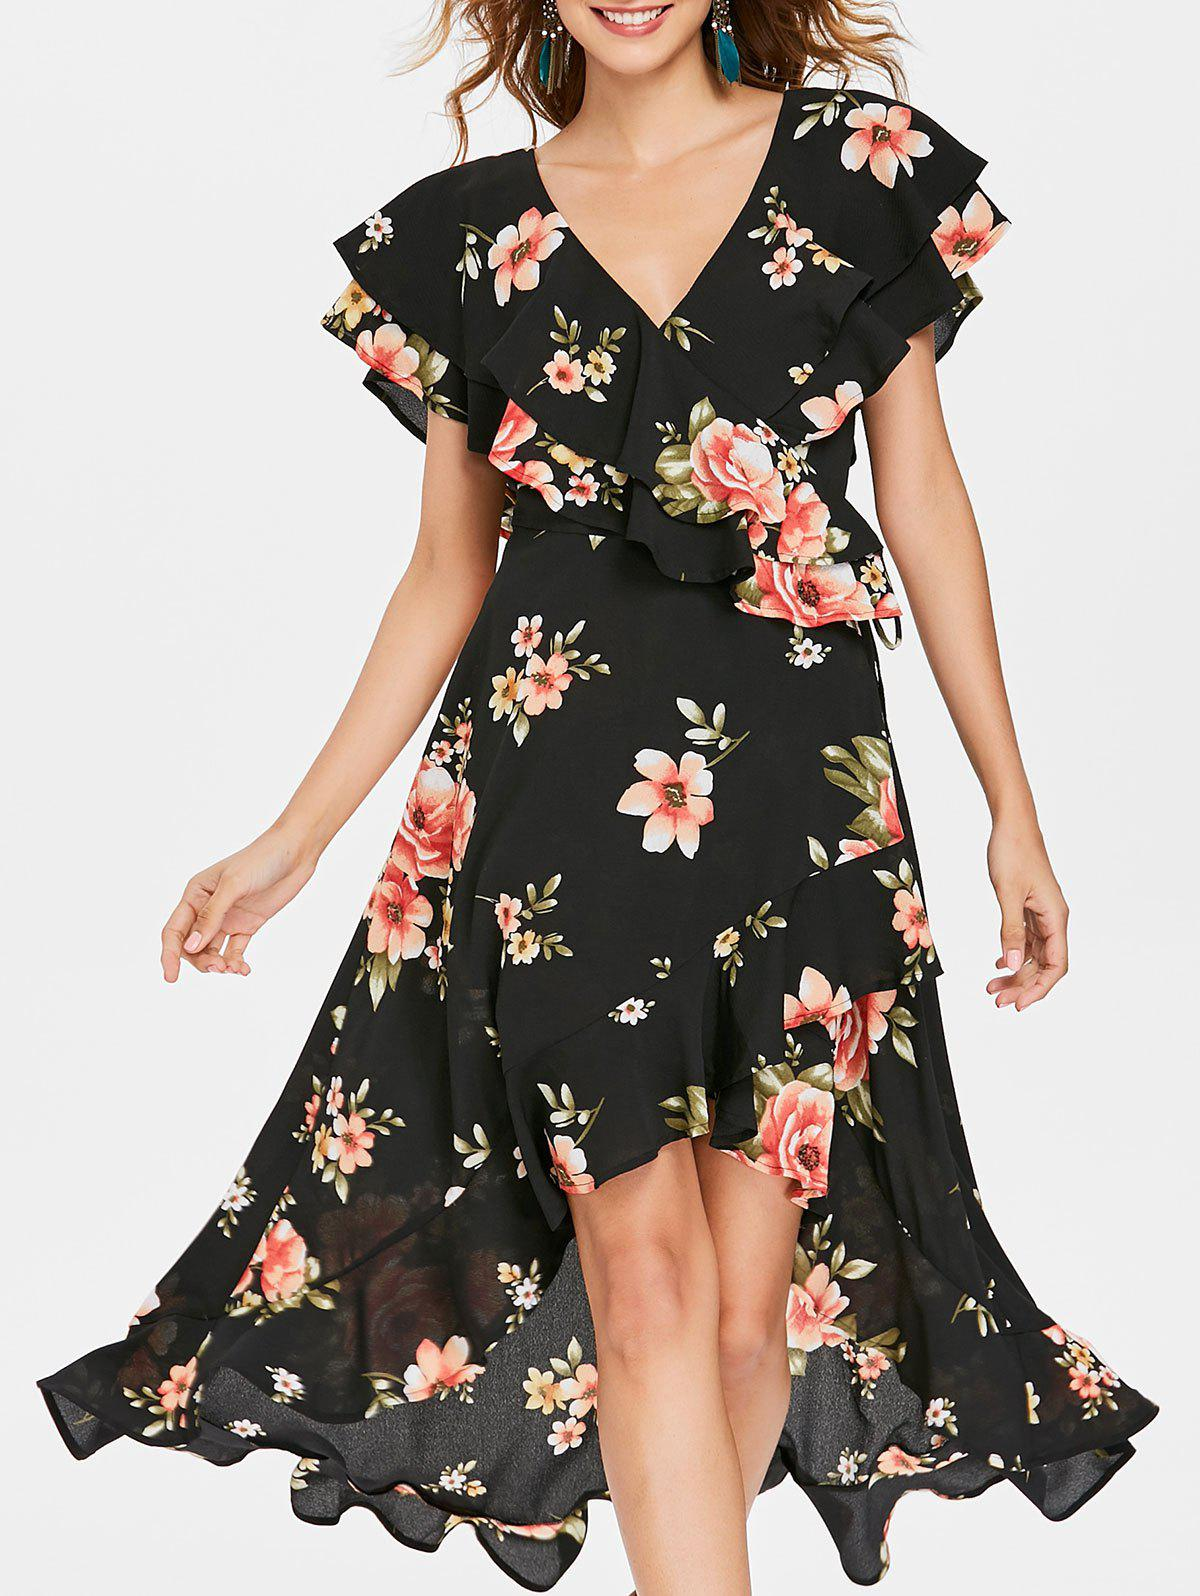 Shop Floral Flounced Dress